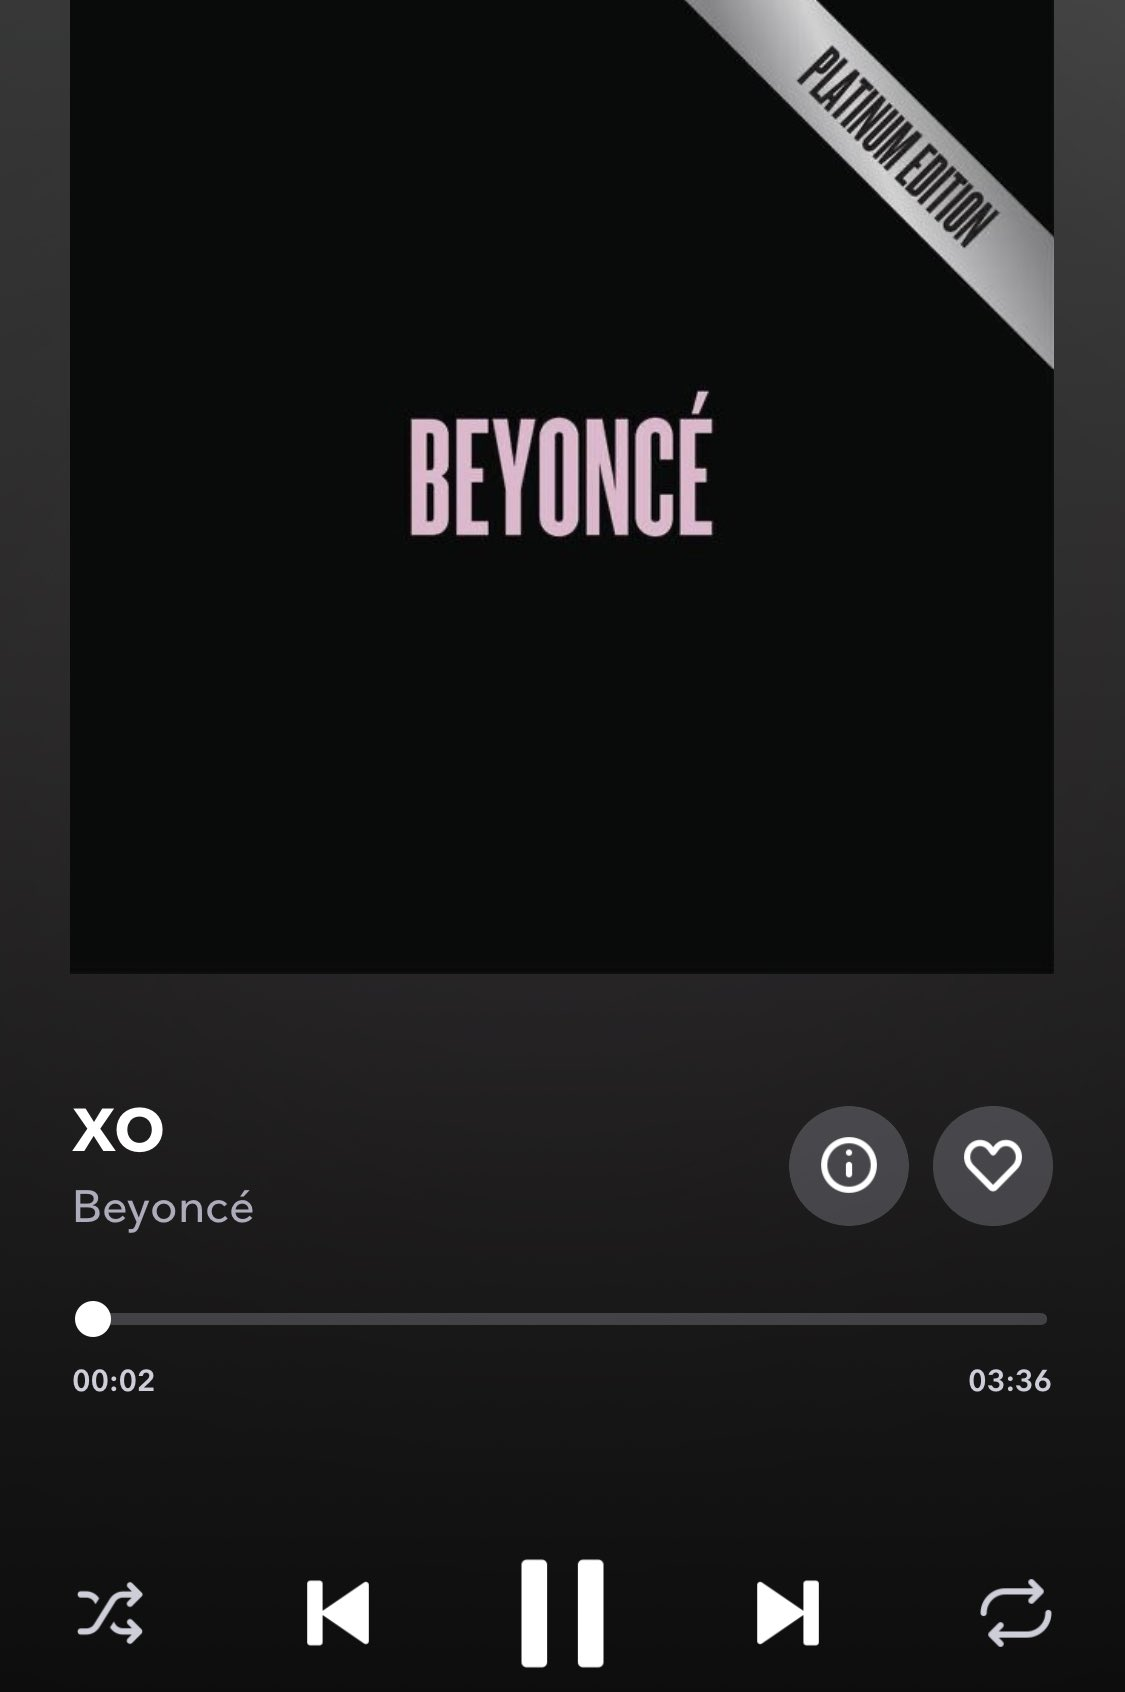 Our favorite Beyonce song Happy Birthday